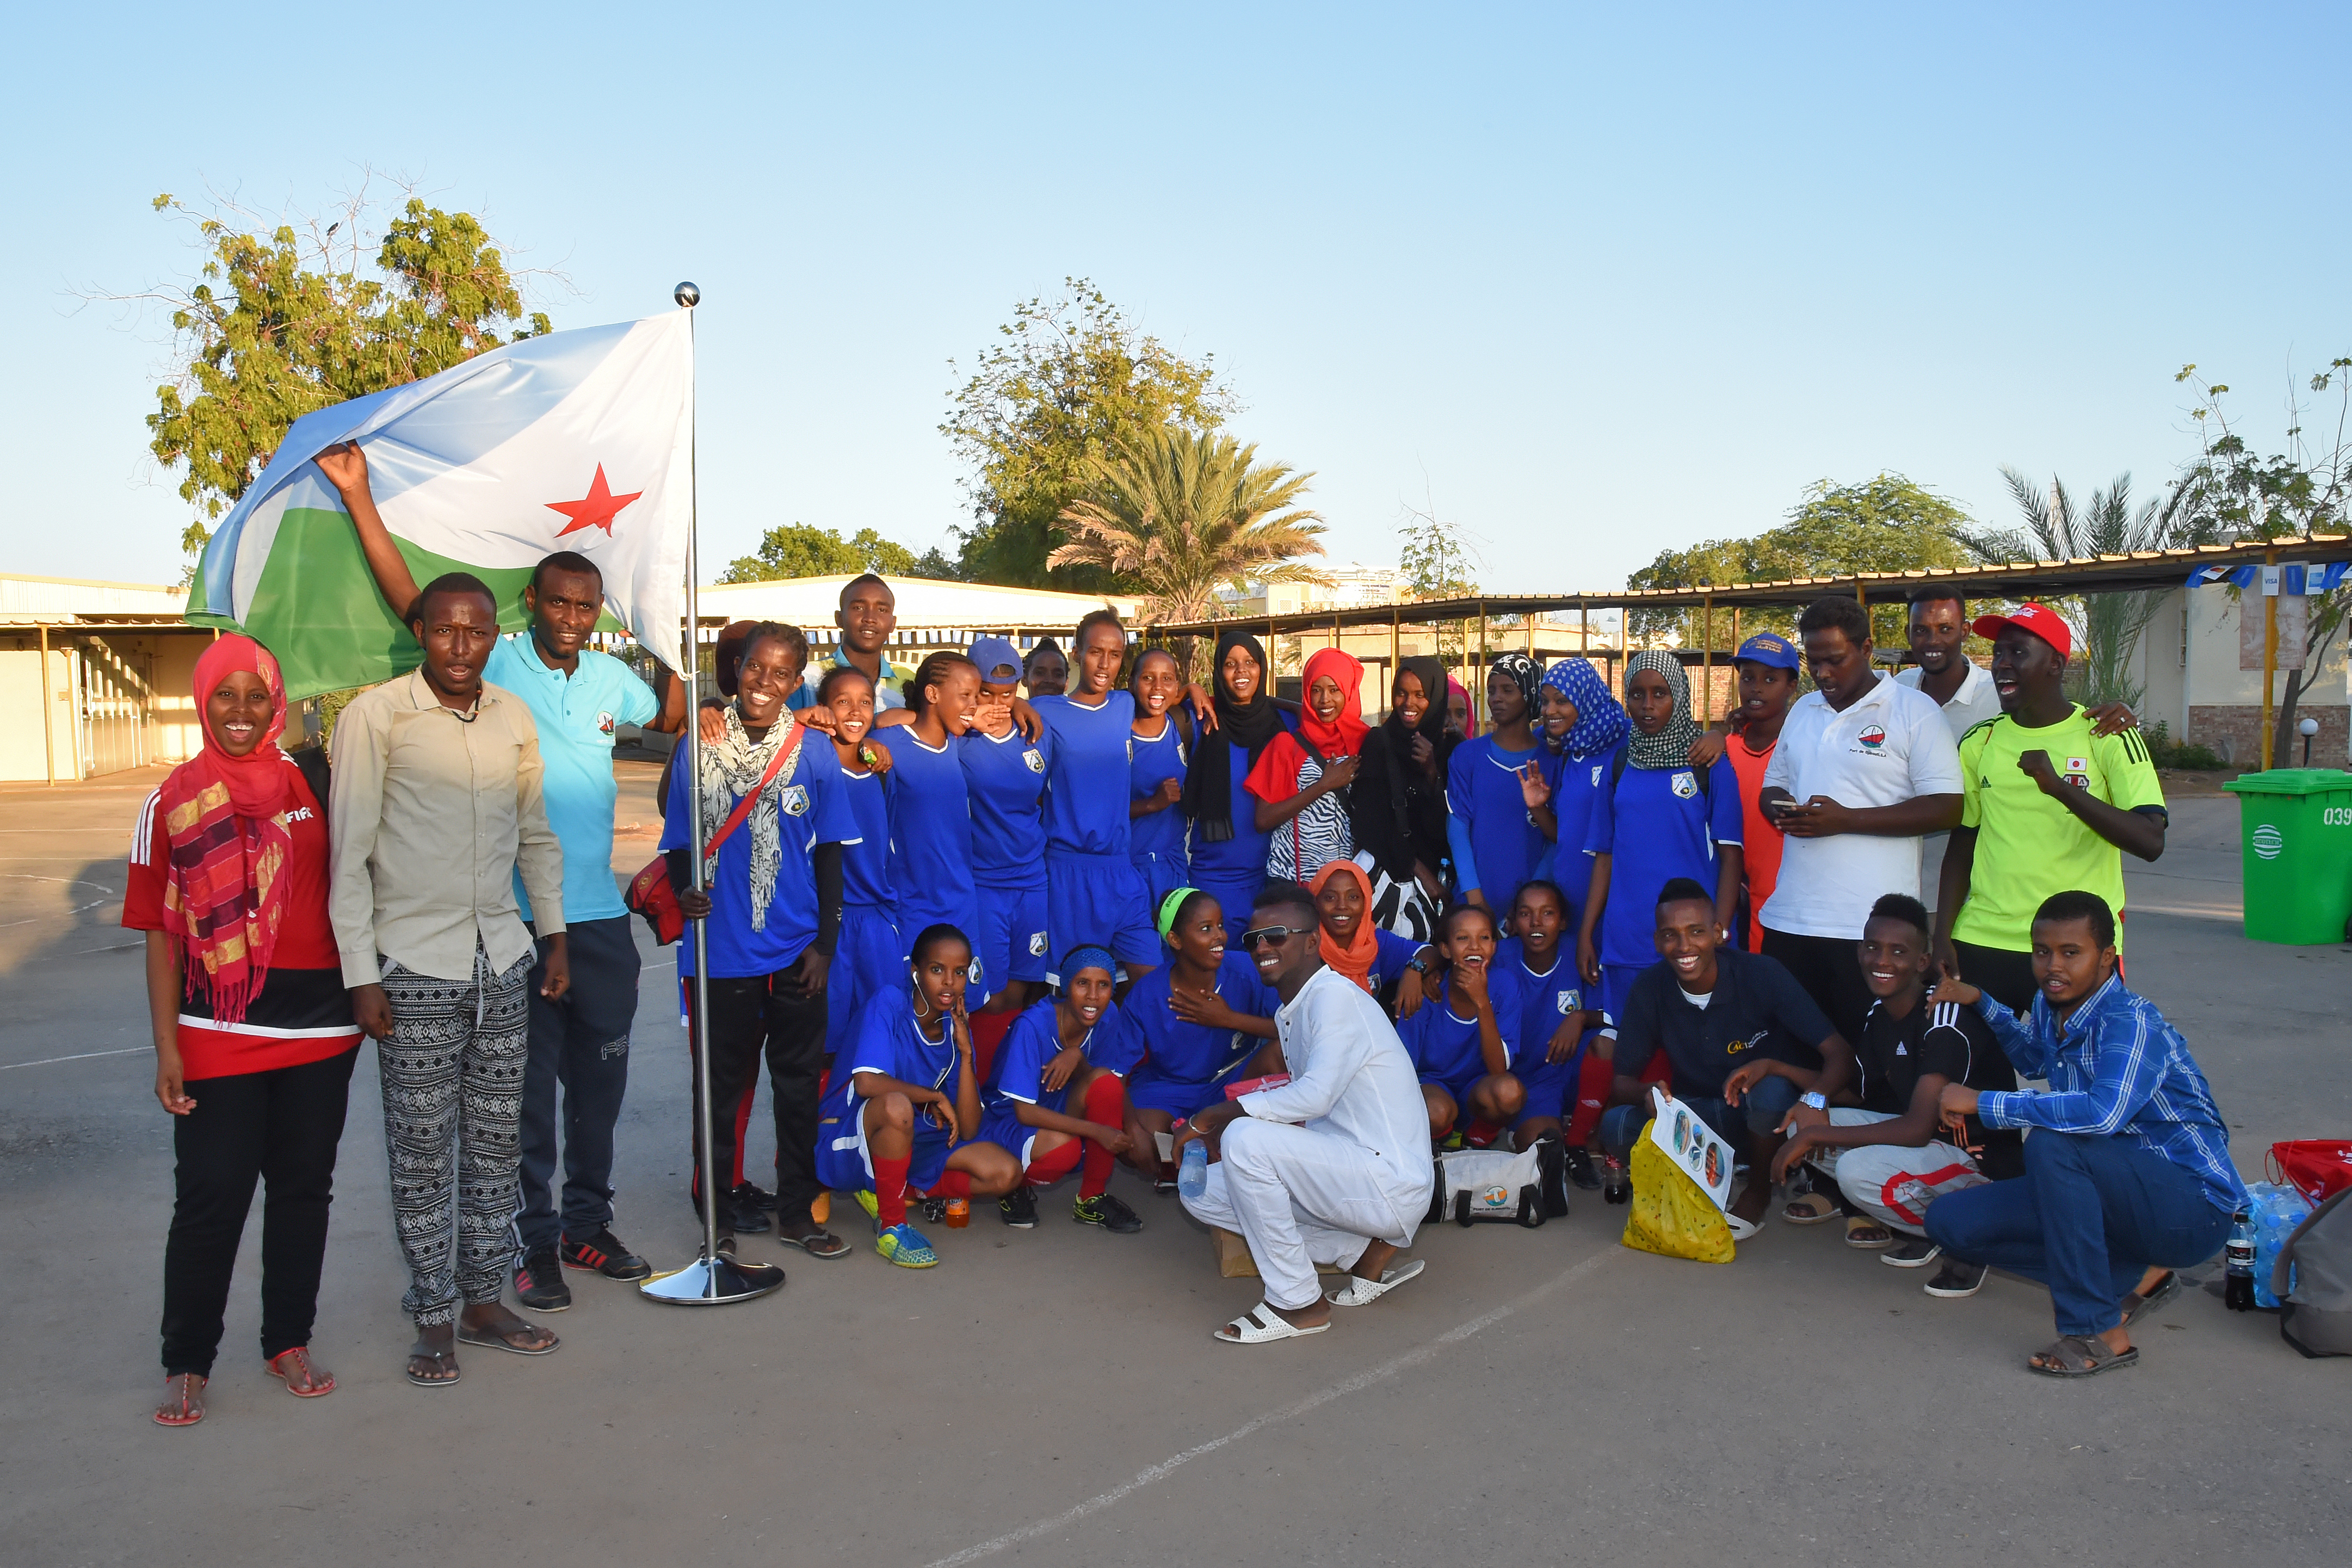 A women's soccer team from Djibouti City gather with friends at the French school Kessel in downtown Djibouti Dec. 9, 2016 following a friendly soccer tournament supporting the Kick for Nick Foundation. The non-profit foundation was established in 2006 by the family of Pfc. Nicholas Madaras, an avid soccer player and youth coach who was killed while serving in Iraq. (U.S. Air National Guard photo by Master Sgt. Paul Gorman)